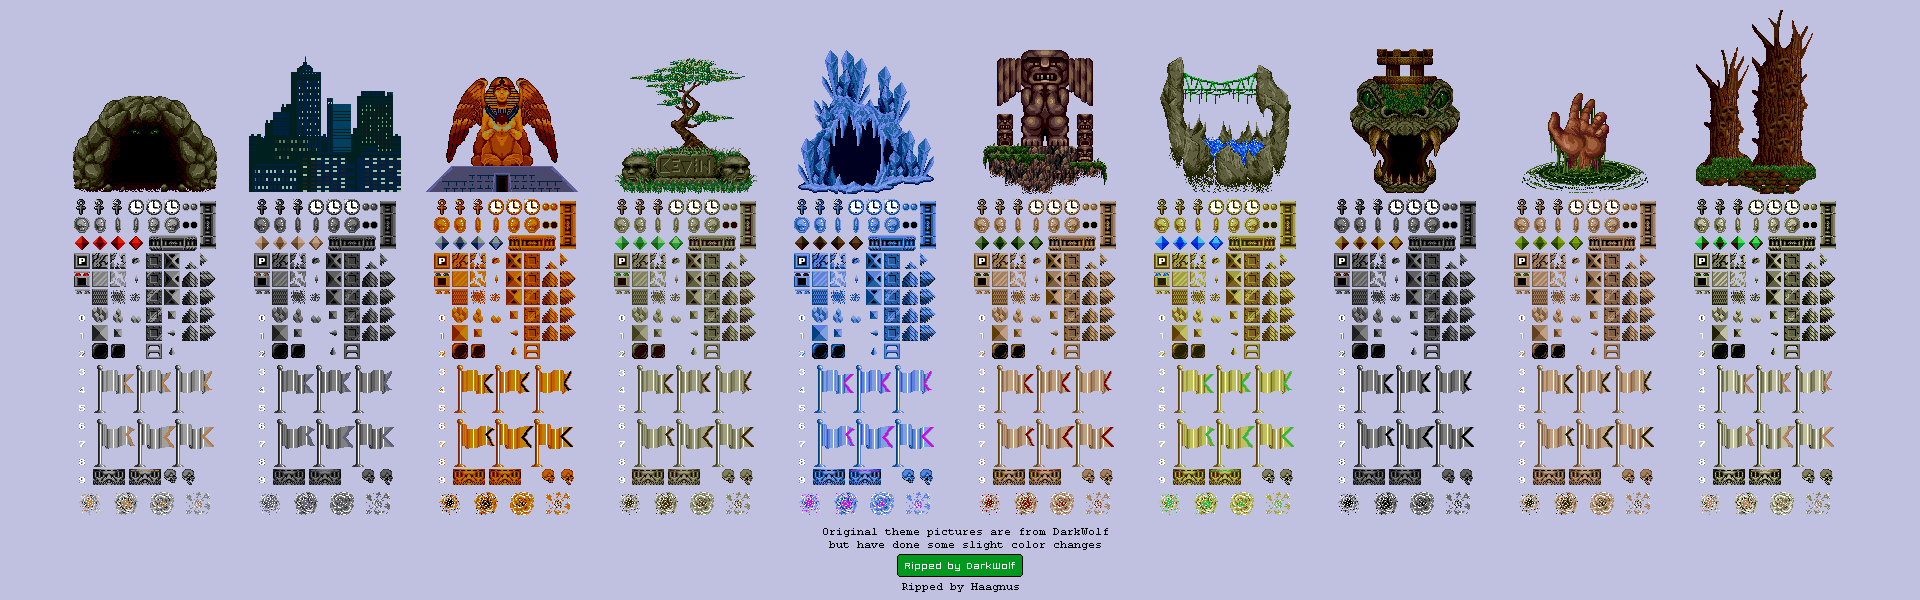 The Spriters Resource Full Sheet View Kid Chameleon Level Titles